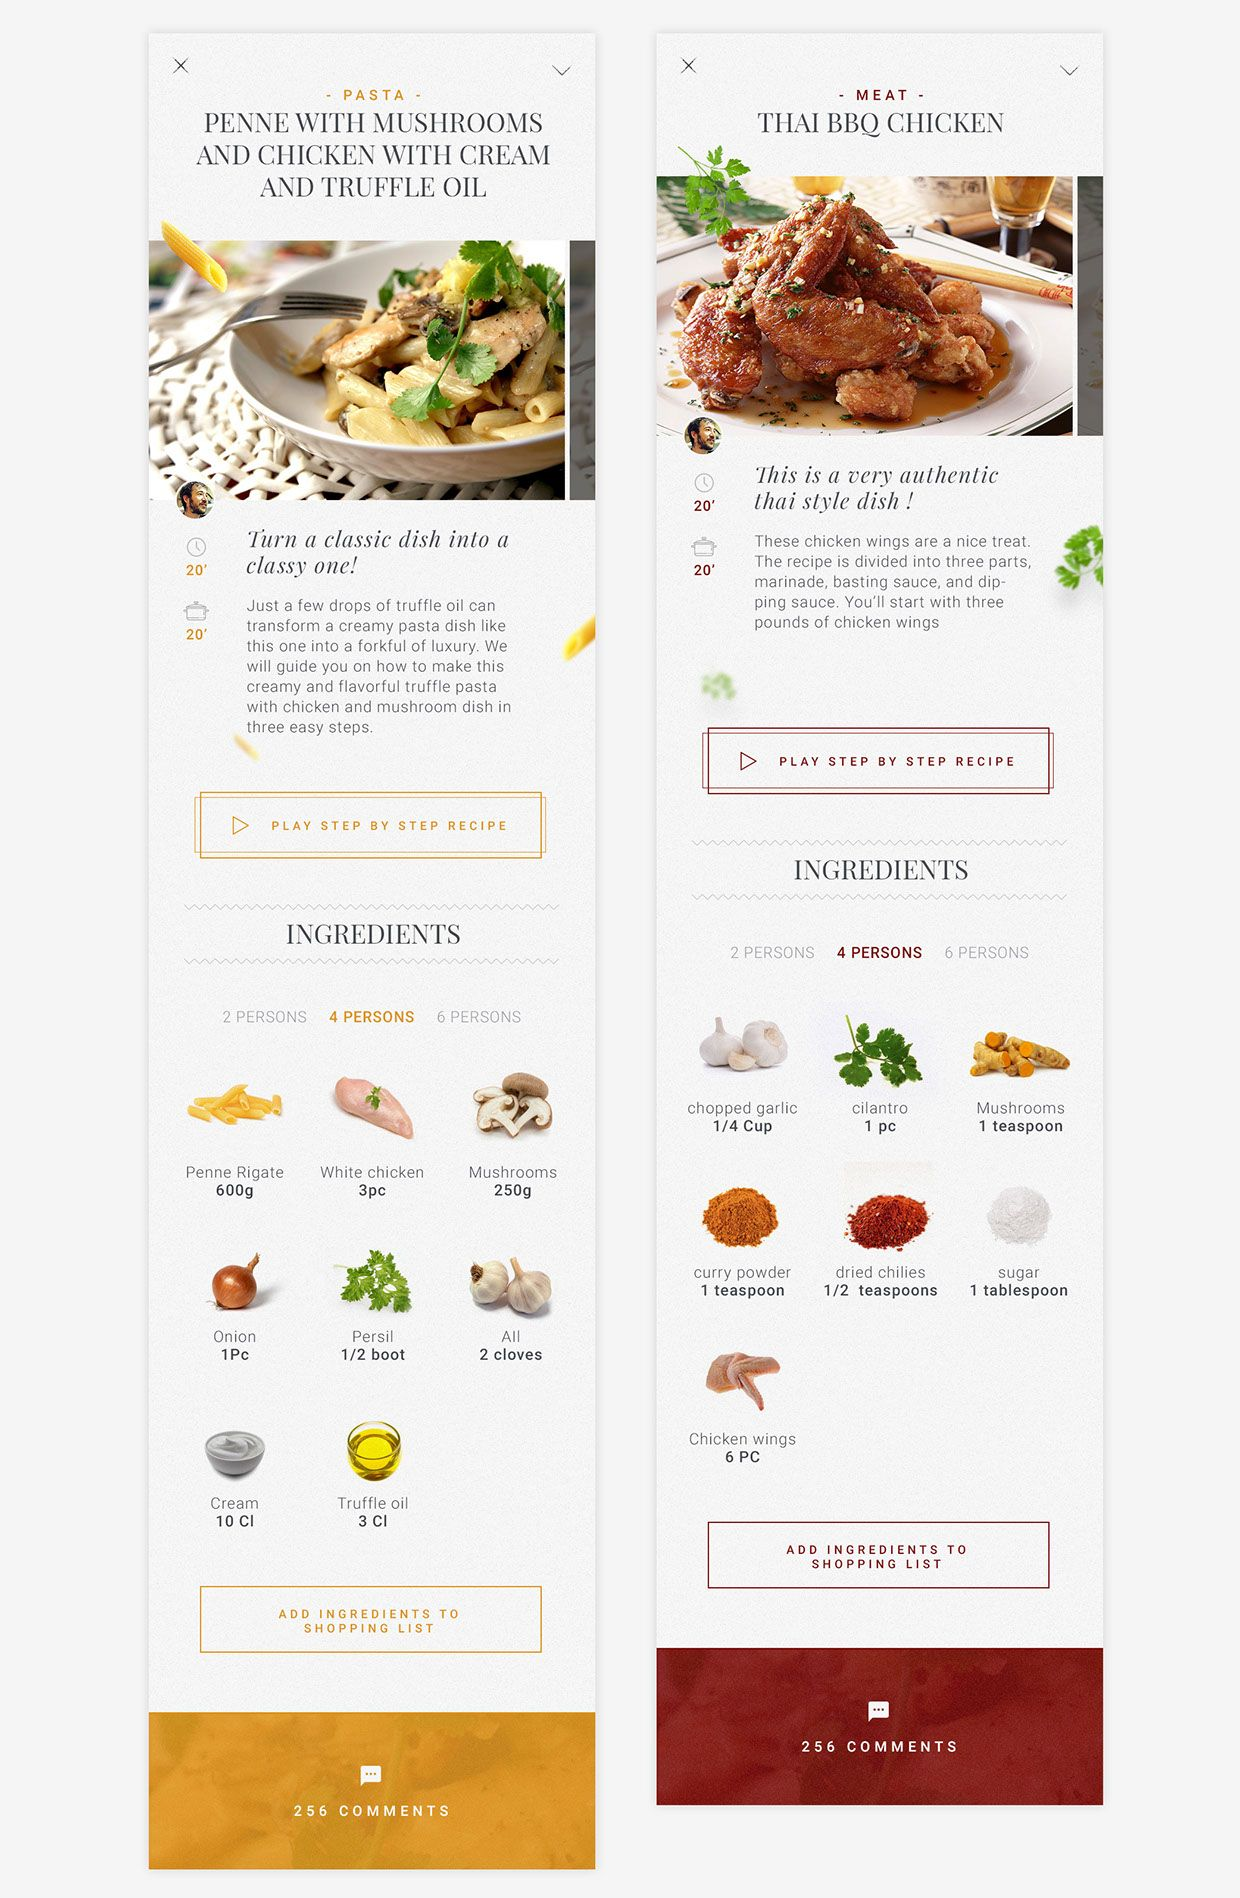 Free cooking recipe app template on behance fruitage miam is a free ios ui kit for your cooking appsthis is a useful ui kit for cooking recipe mobile apps with 17 fully editable and customisable screens forumfinder Gallery